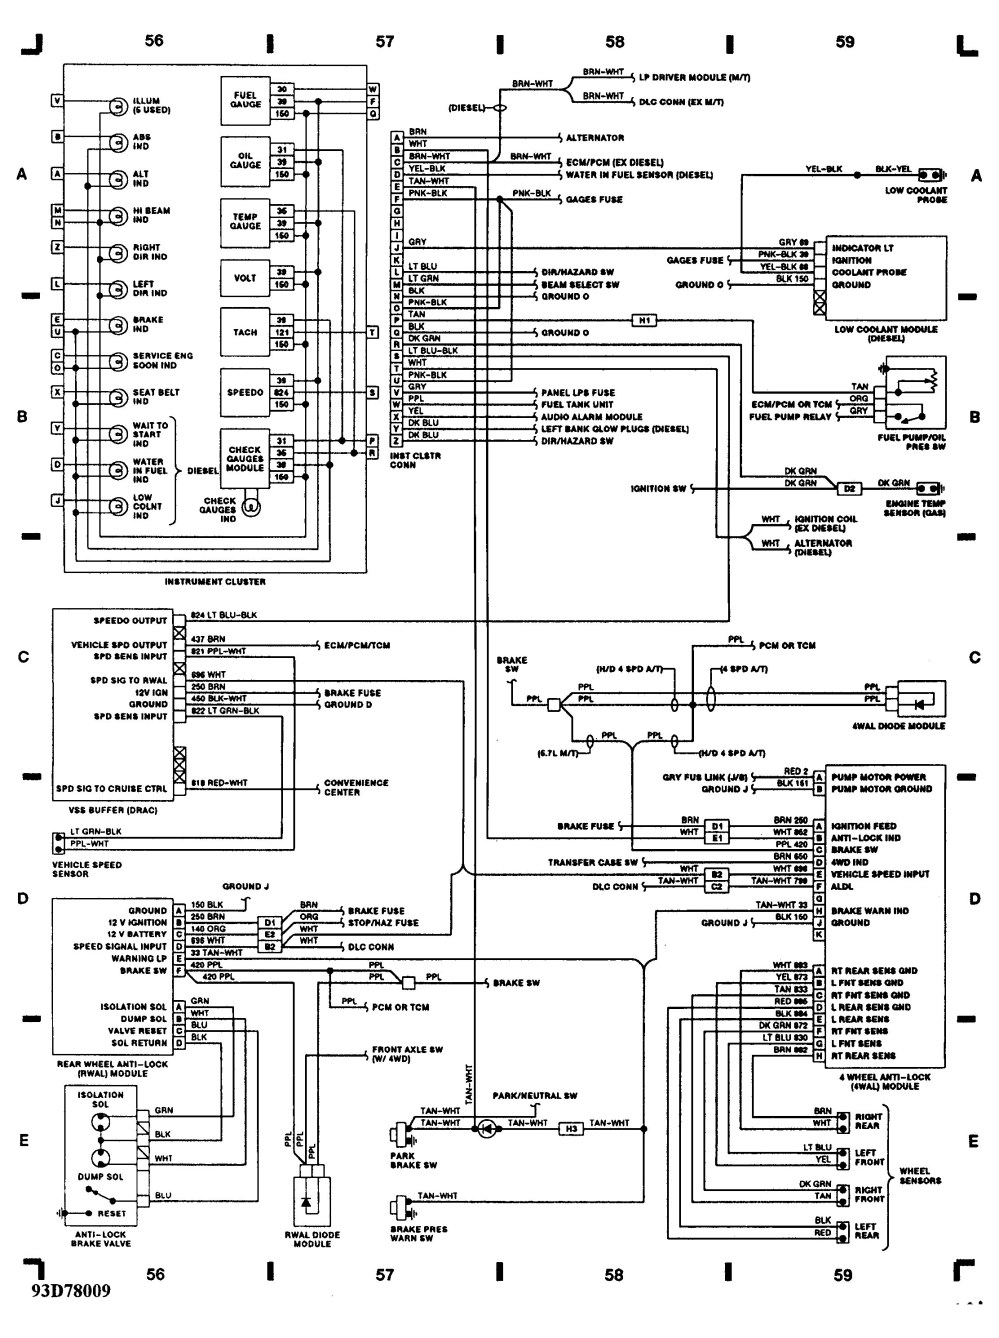 medium resolution of 2005 tahoe engine diagram wiring diagram centre 1995 chevy tahoe engine diagram wiring diagram forward 2005